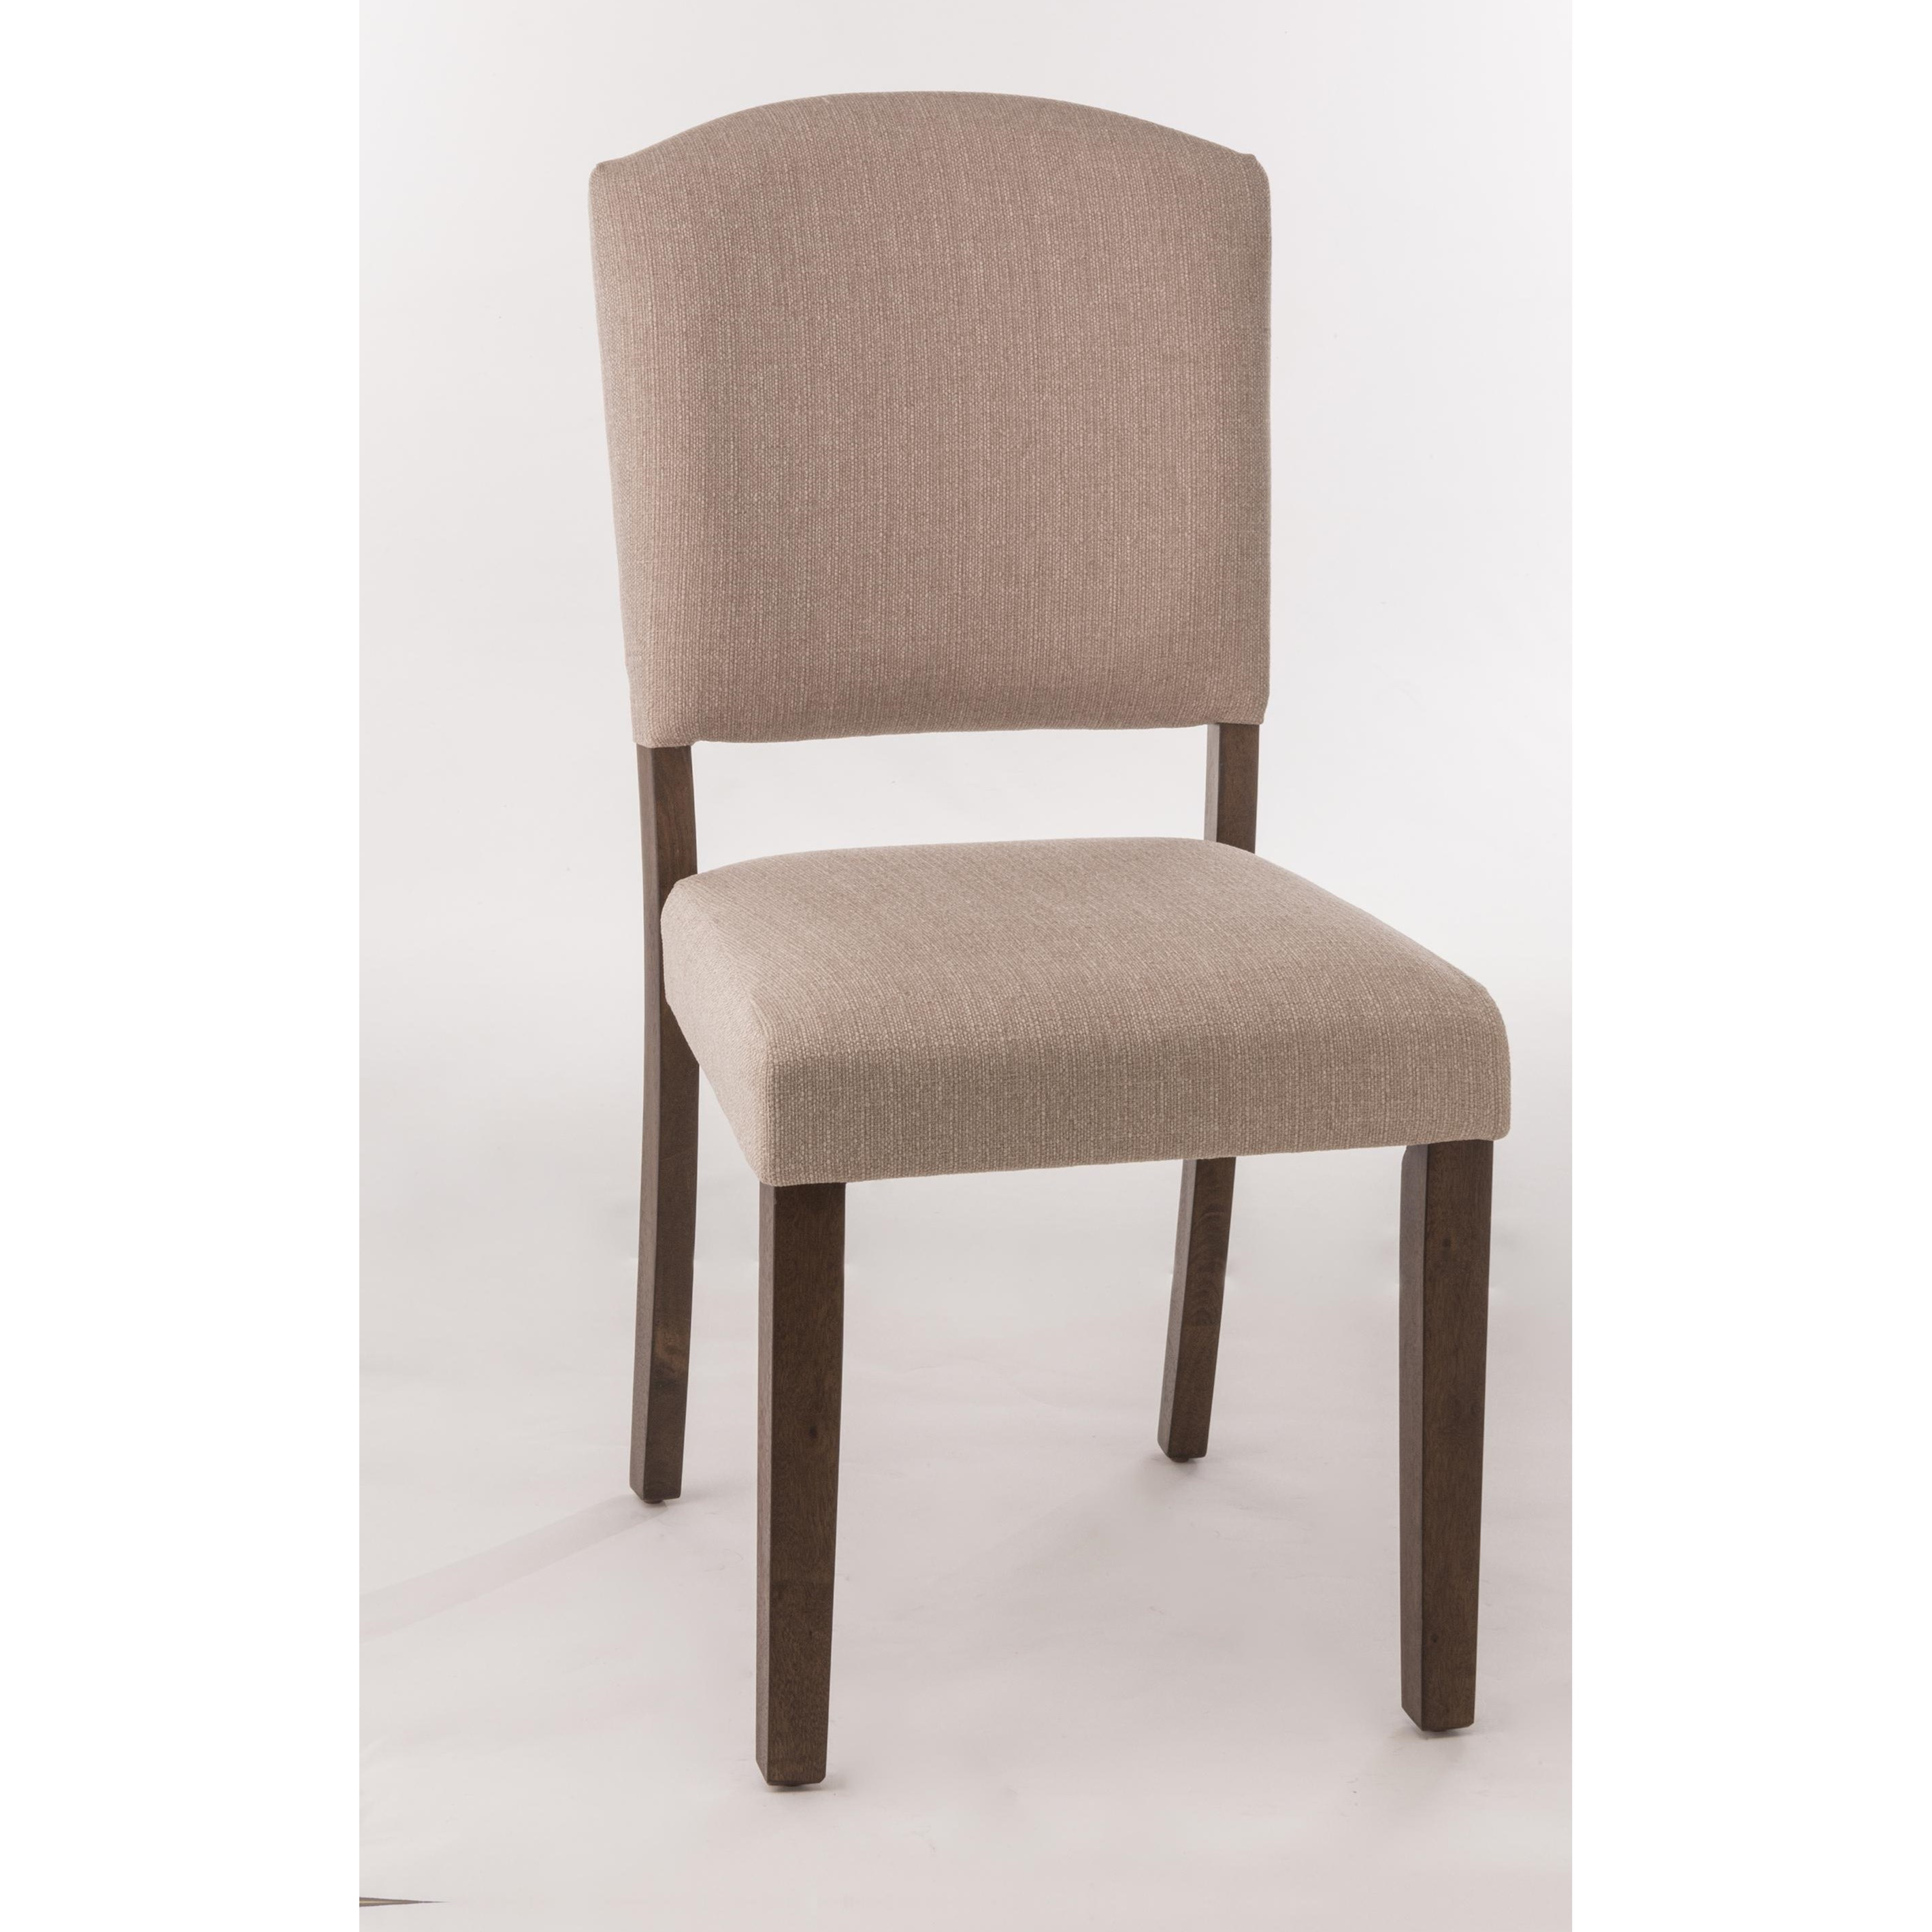 Emory Parson Dining Chair With Upholstered Seat Ruby Gordon Furniture Mattresses Dining